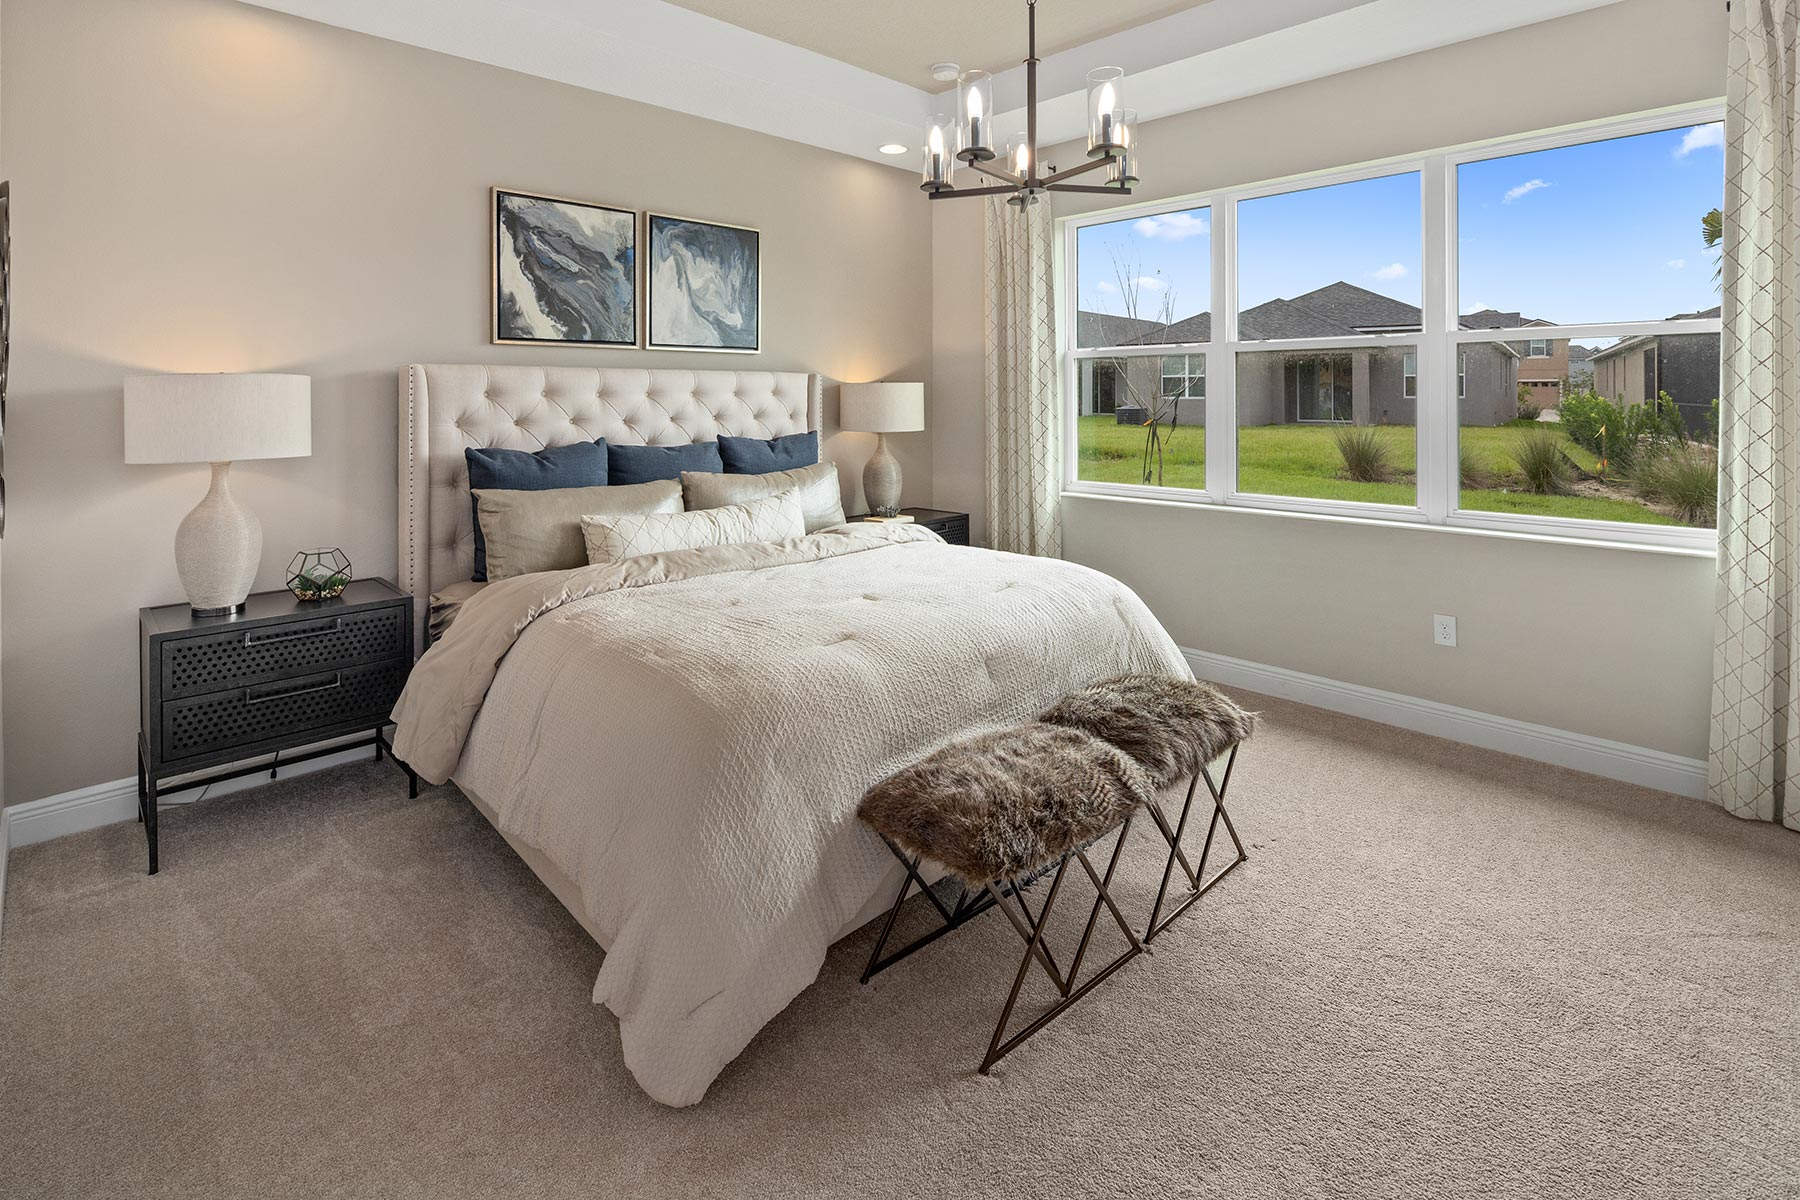 Glendale Plan Bedroom at Tohoqua in Kissimmee Florida by Mattamy Homes